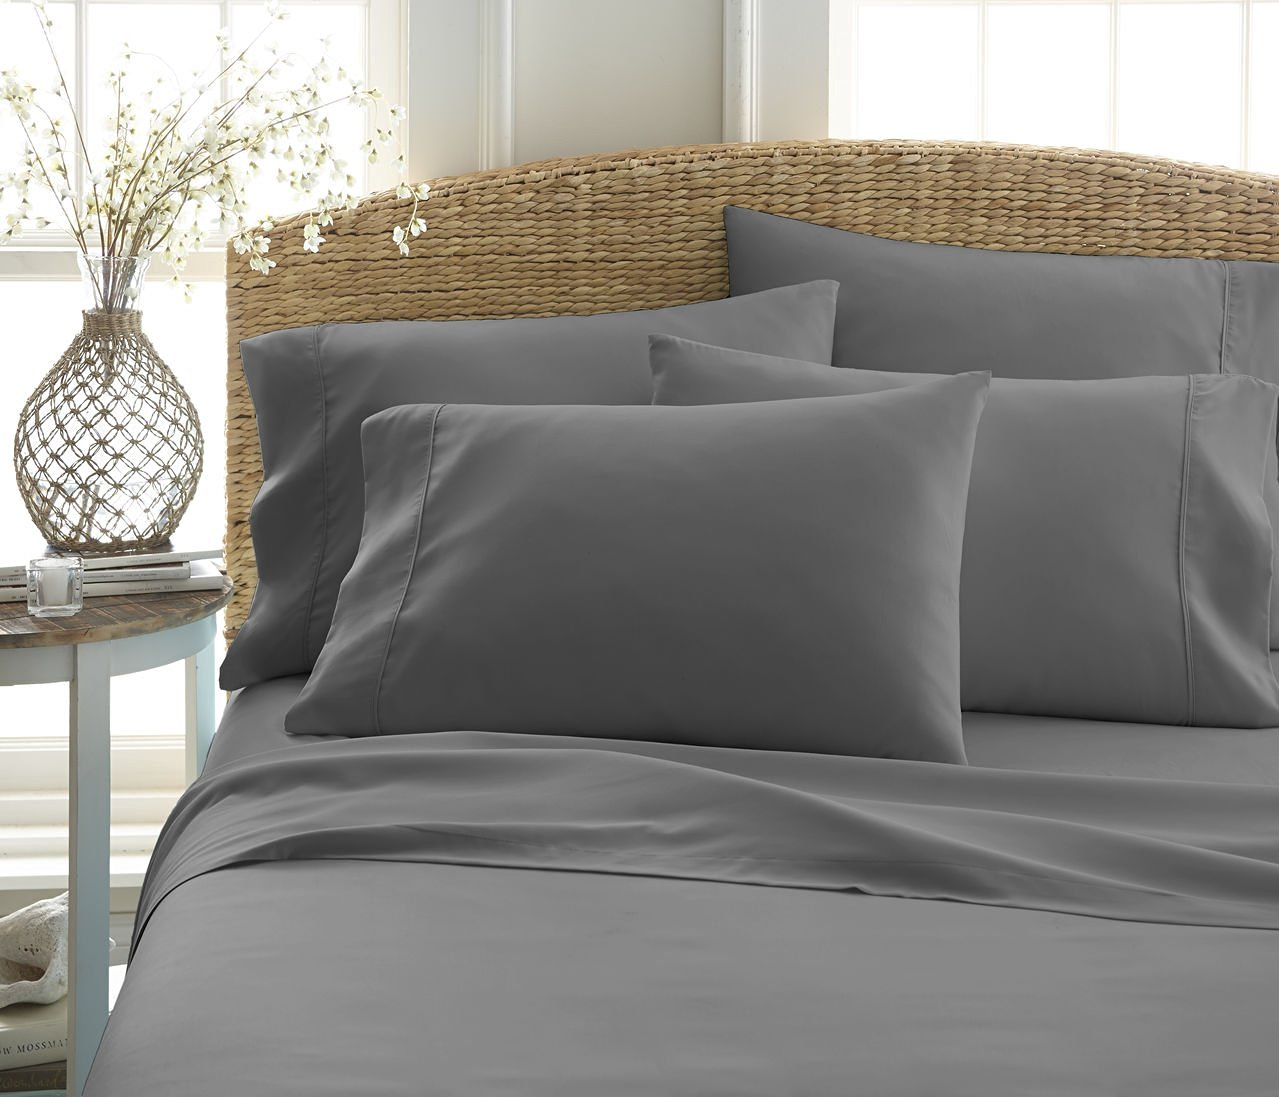 ... Ienjoy Home 6 Pcs Wrinkle Free Bed Sheet Set   Gray   Size: C King ...